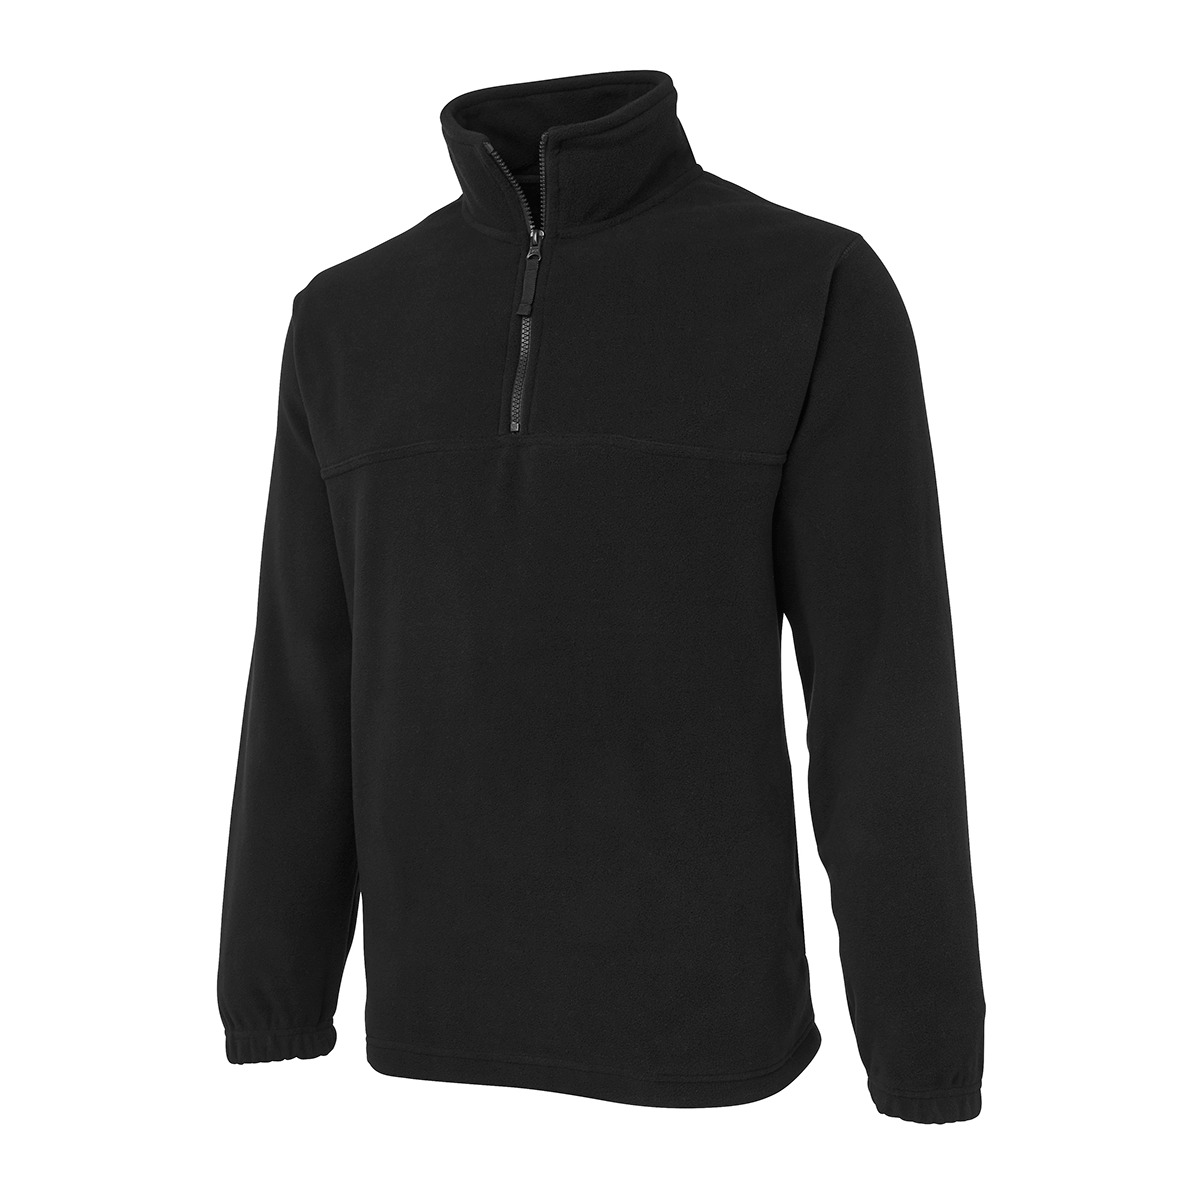 Half Zip Polar Fleece Jb 3ph Selector Uniforms New Zealand